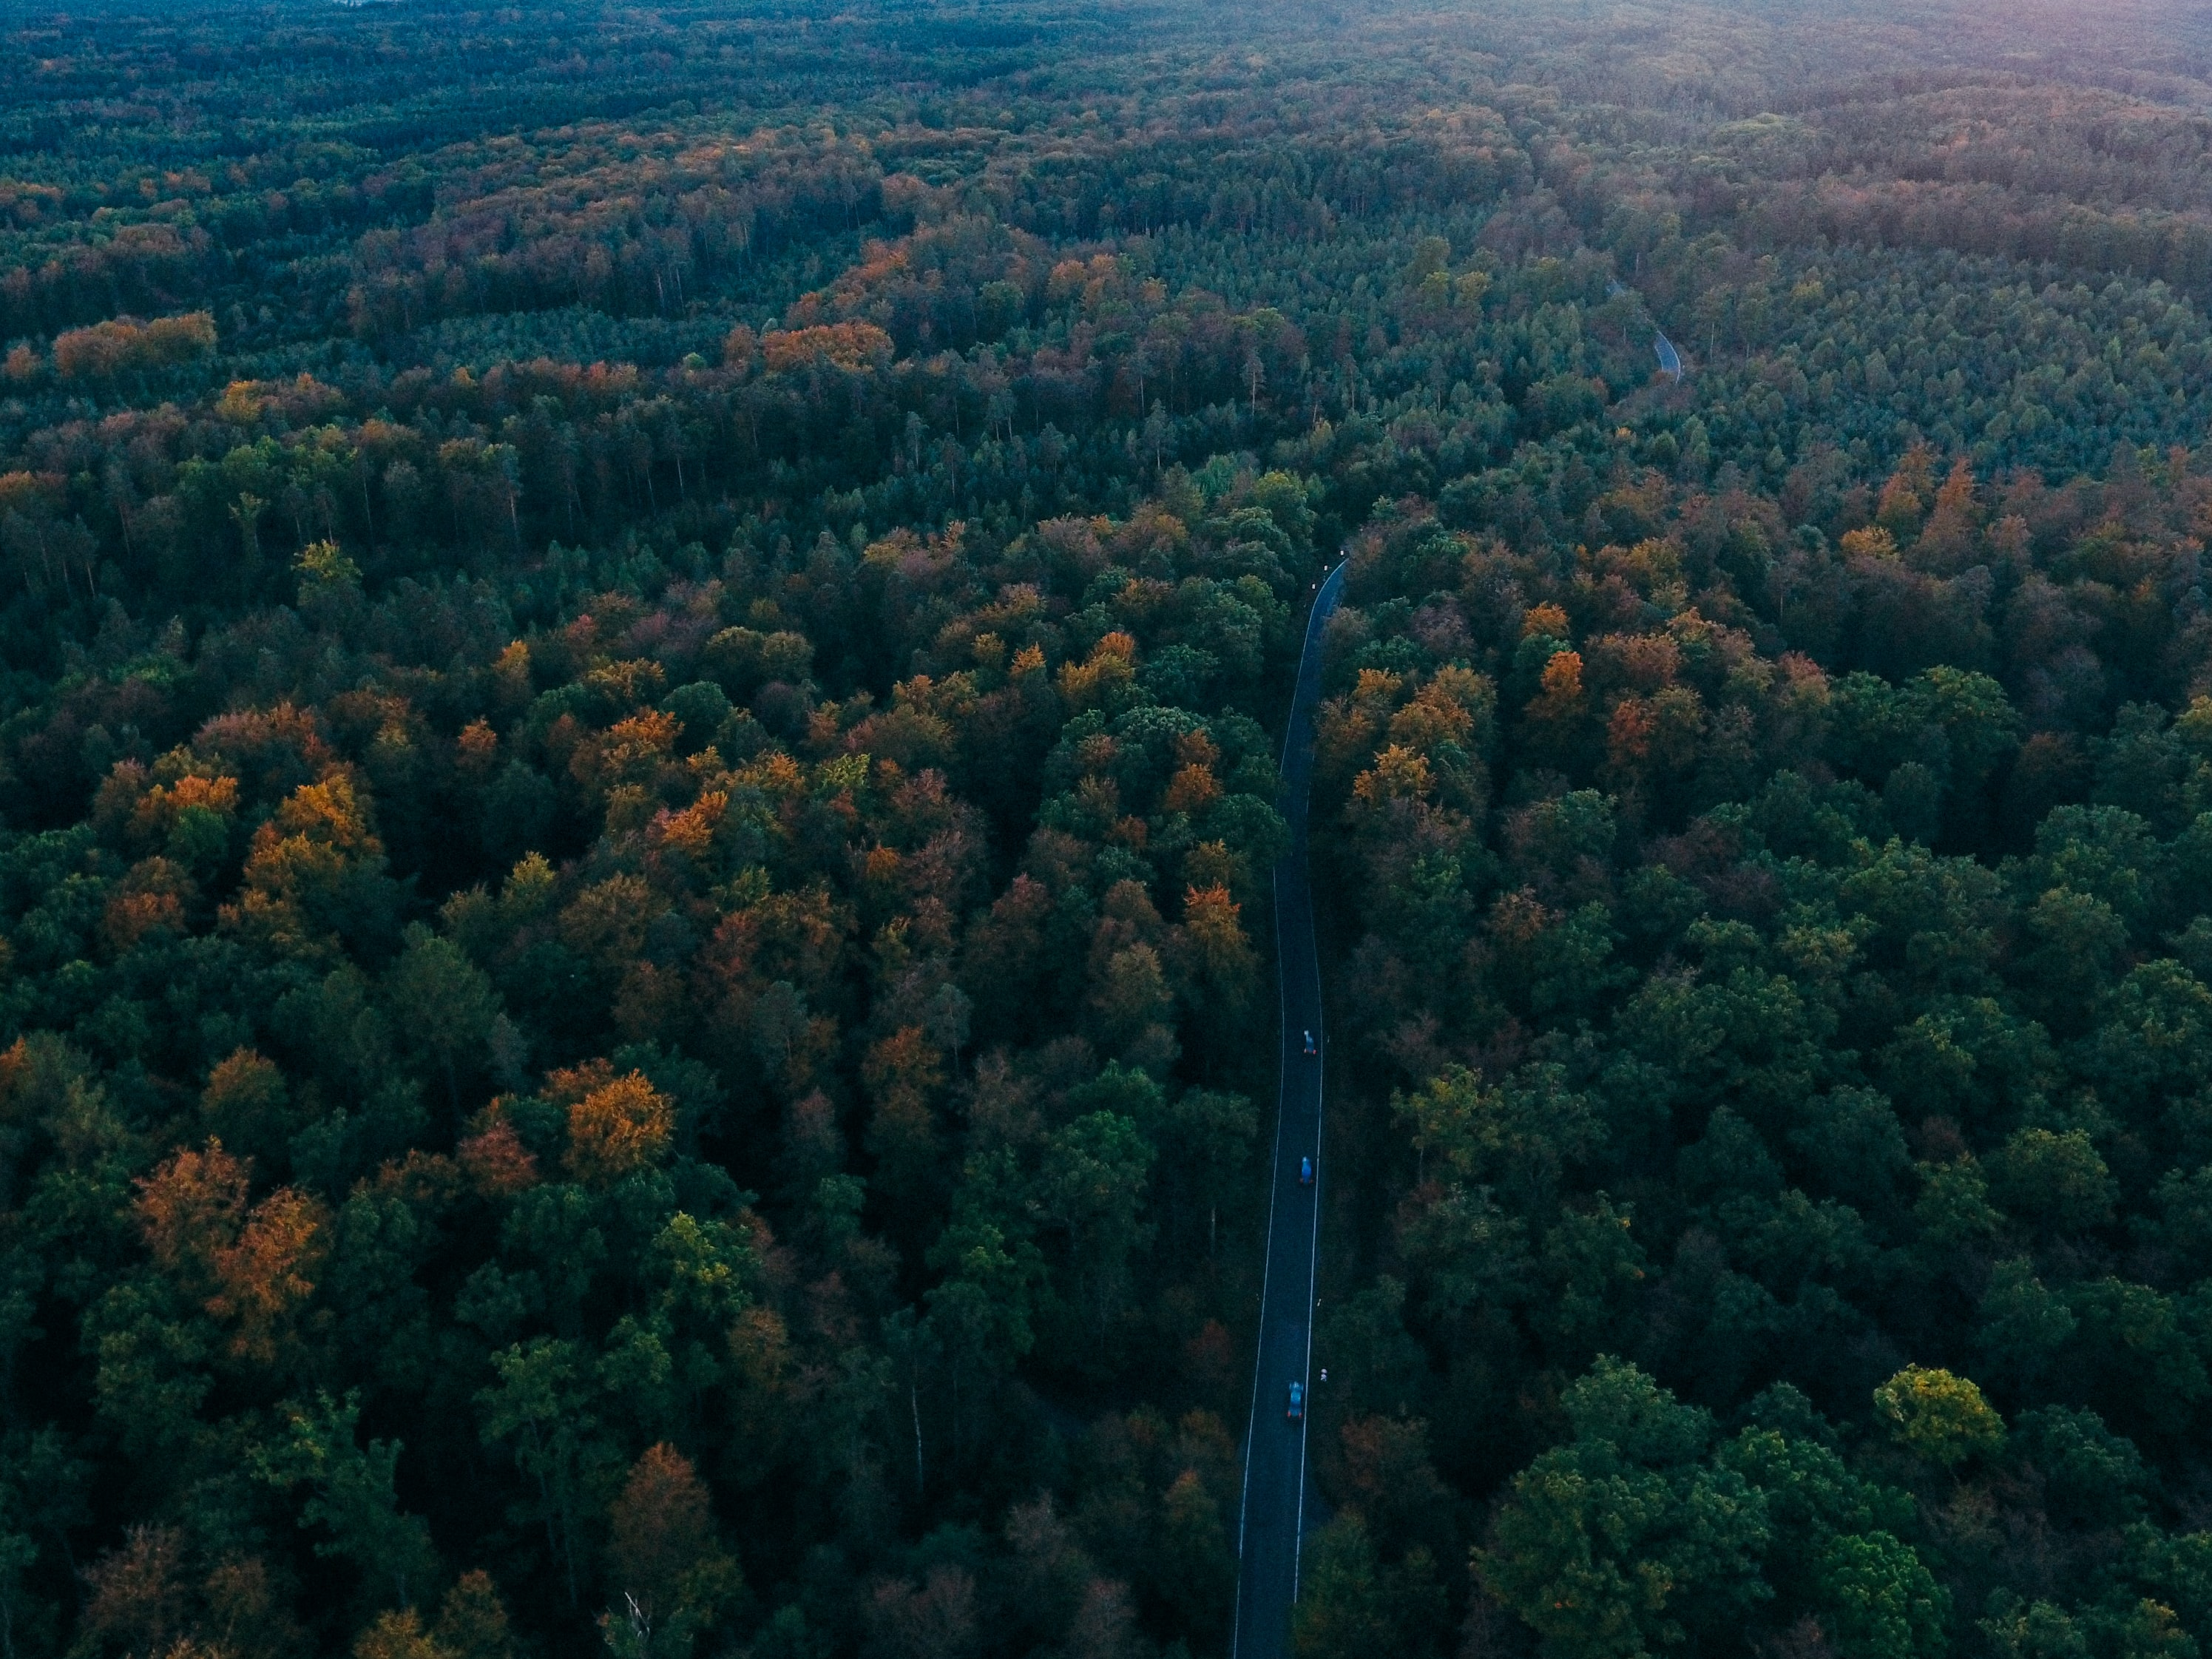 An aerial shot of a road surrounded by dense woods on both sides